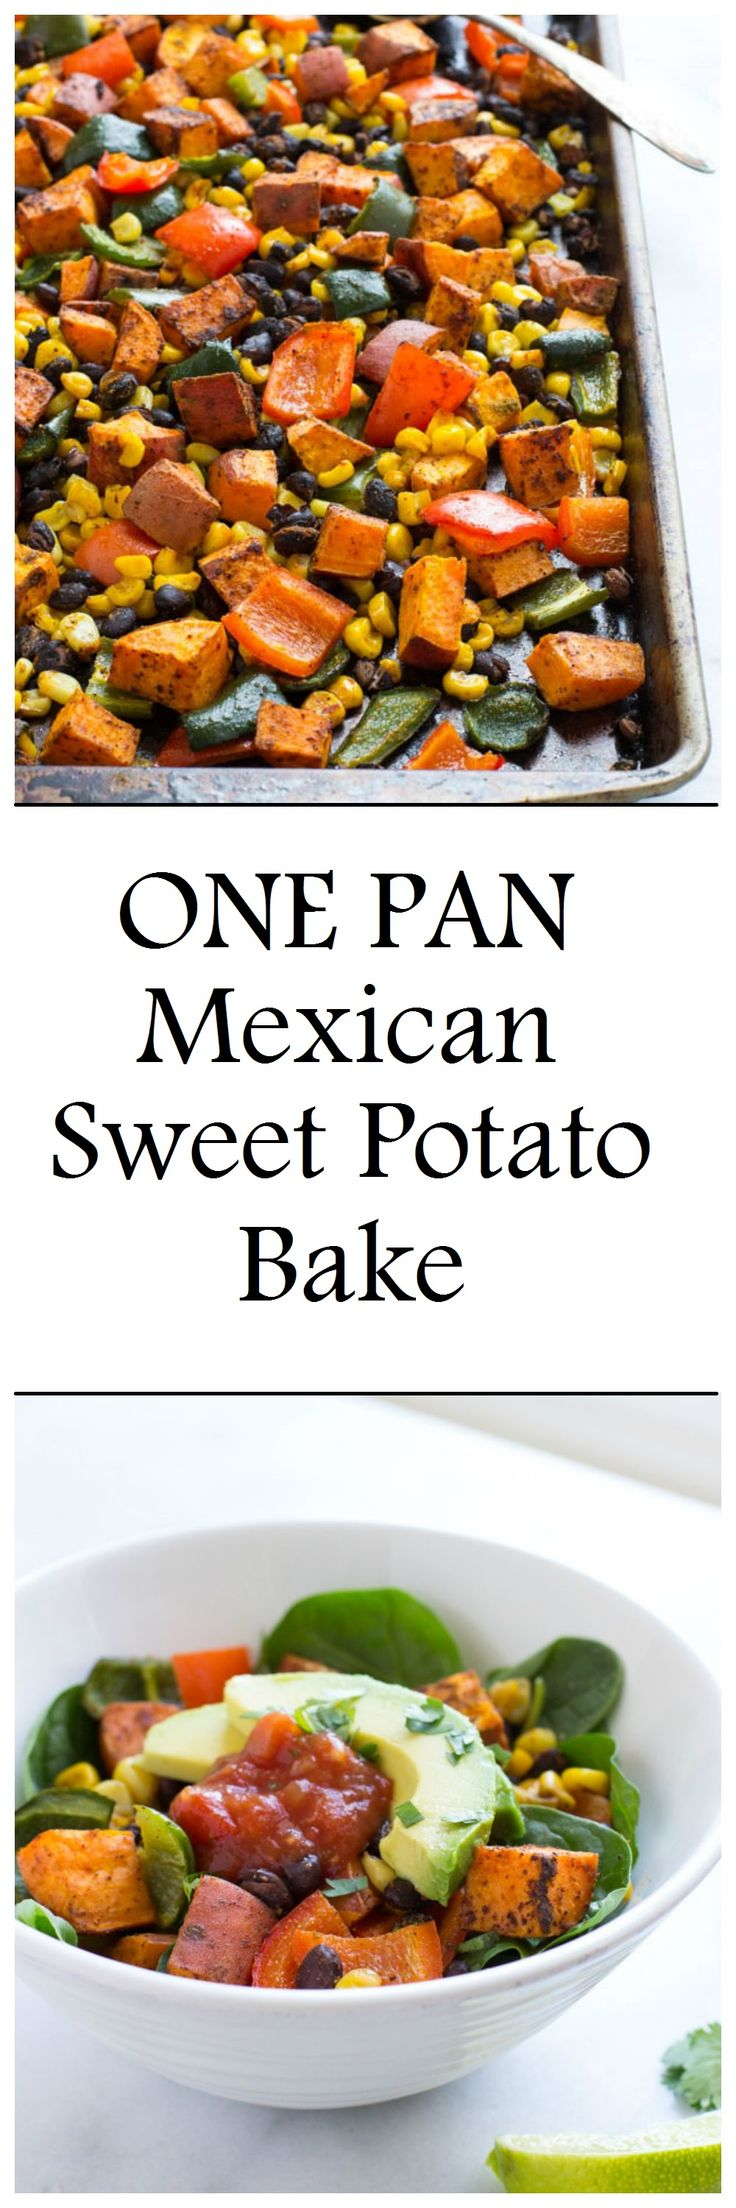 Nutritious sweet potatoes, peppers, black beans and sweet corn are tossed with Mexican seasonings and baked in one pan. Dinner has never been easier or more delicious! Vegan + gluten-free. Okay, this is so easy that I'm not really sure it should be considered a recipe. But I love it so much that I basically …